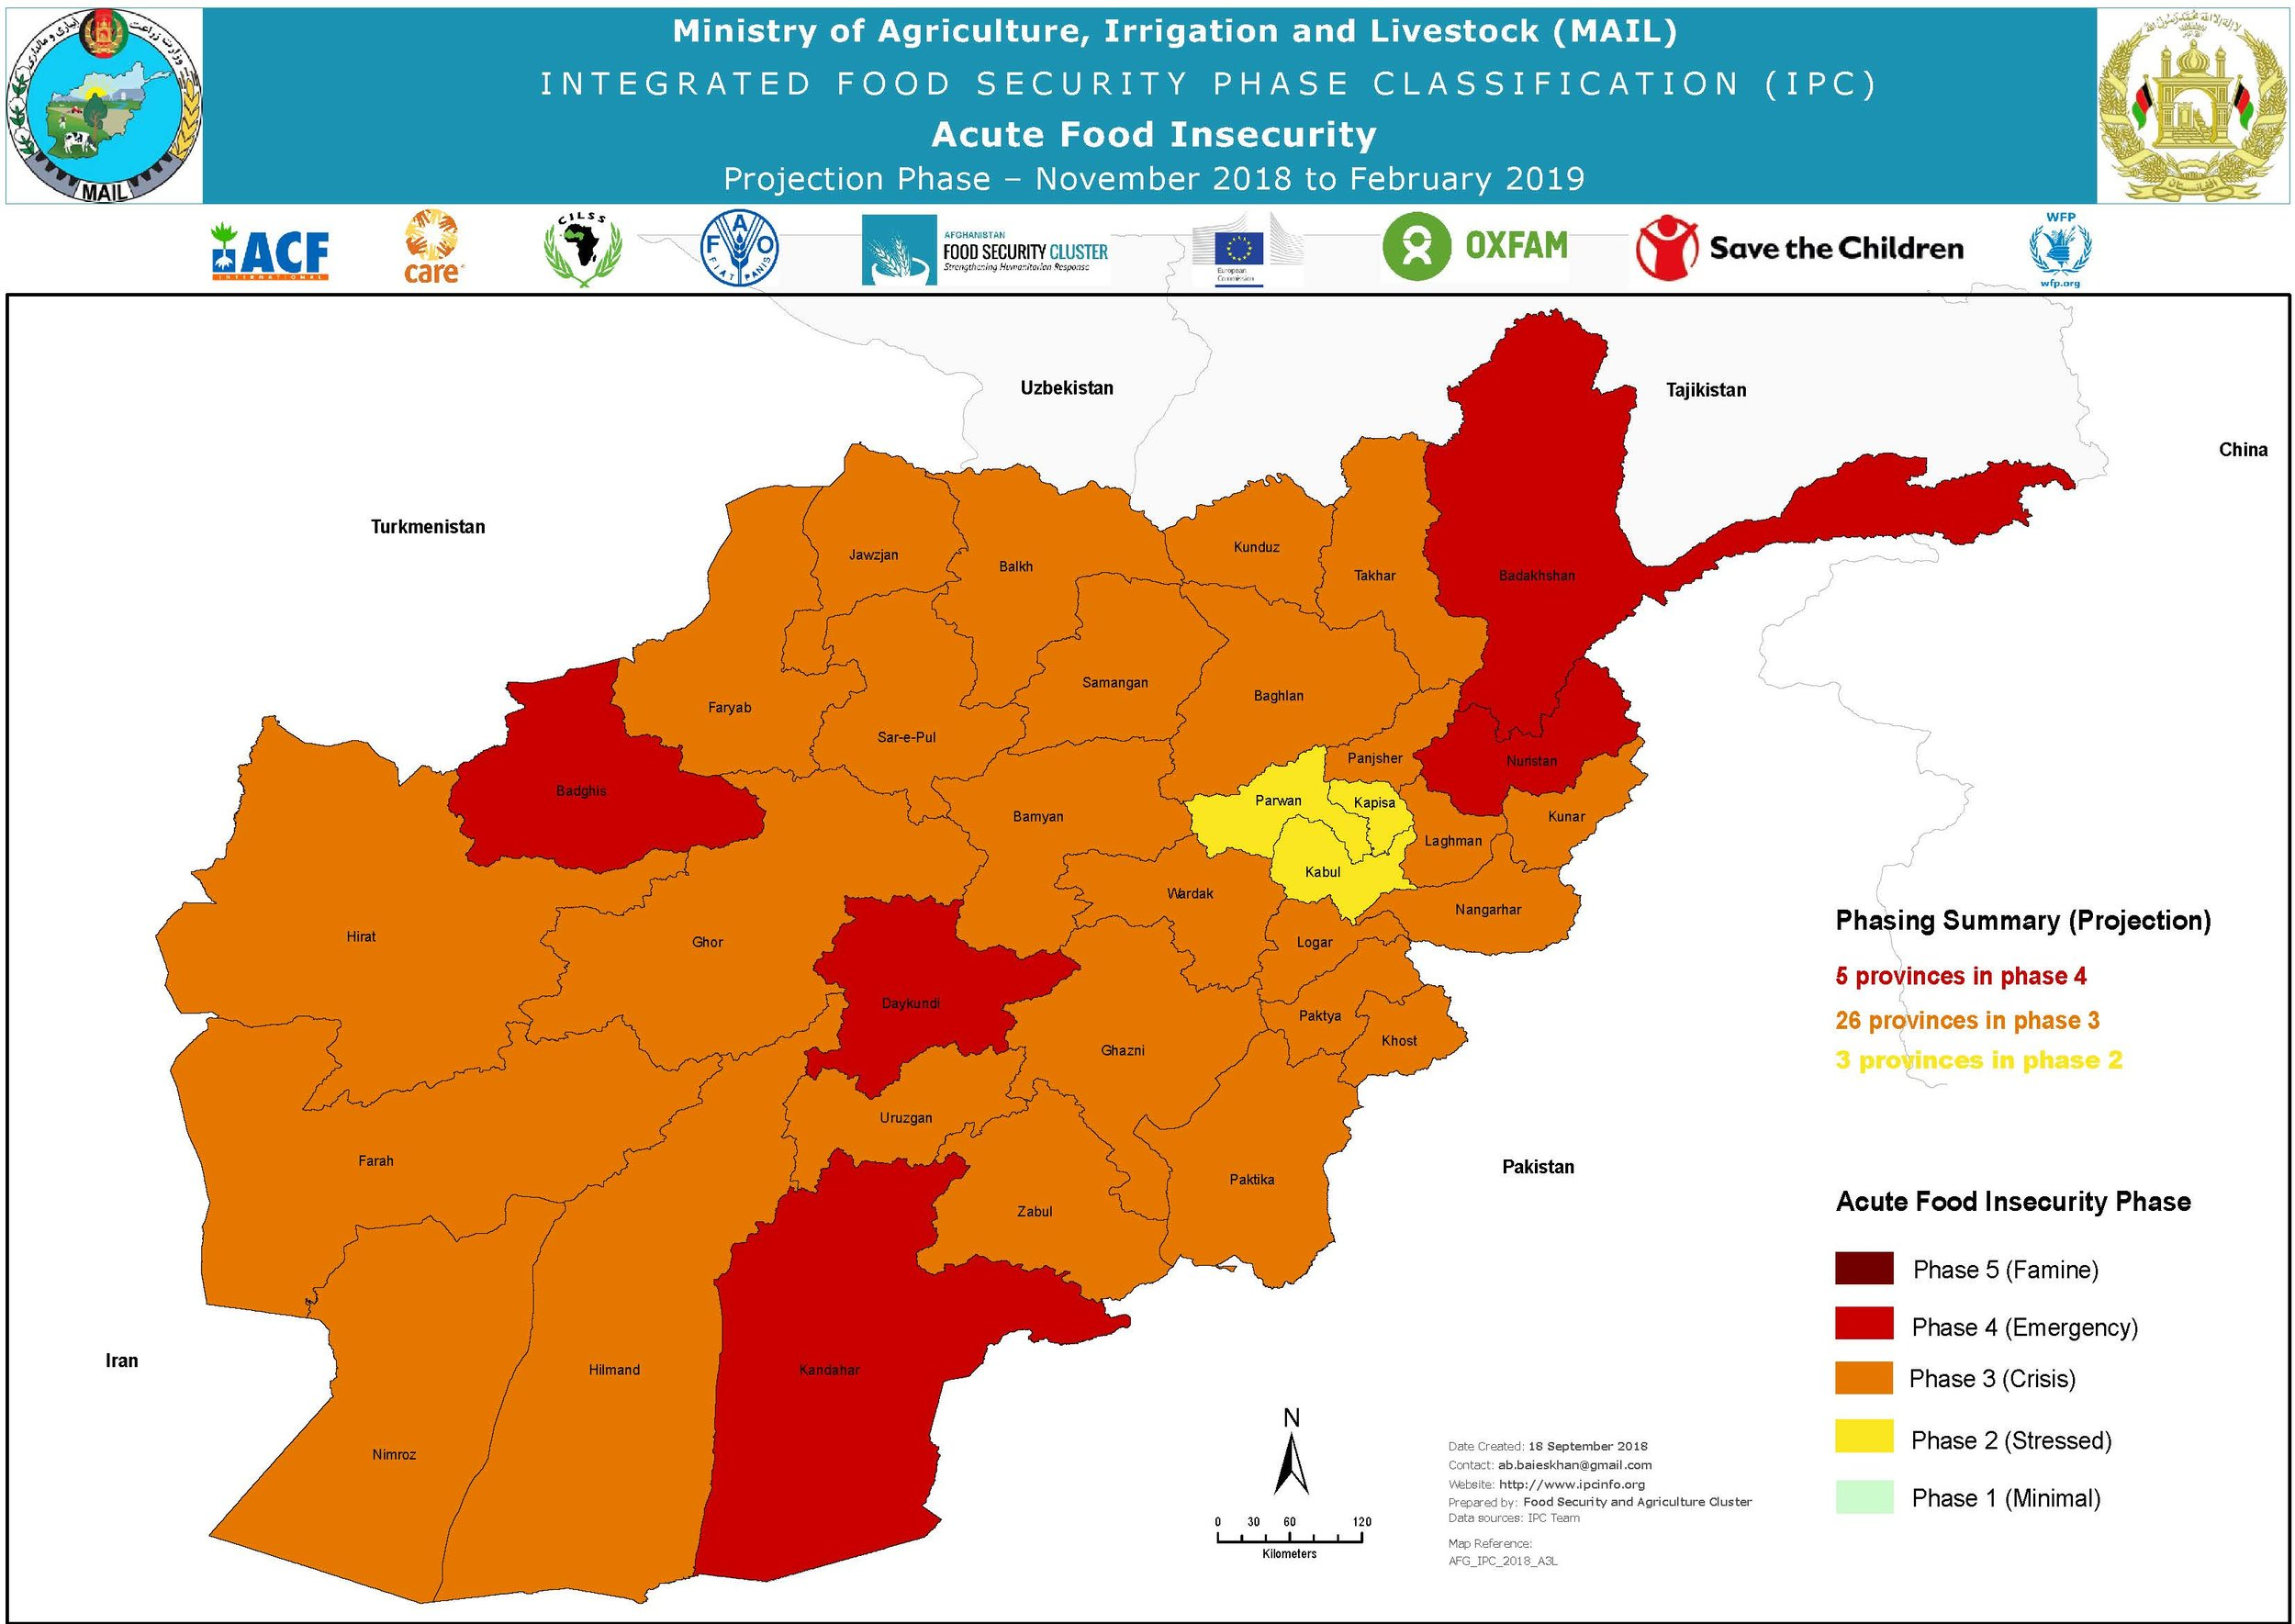 IPC Acute food insecurity 2019